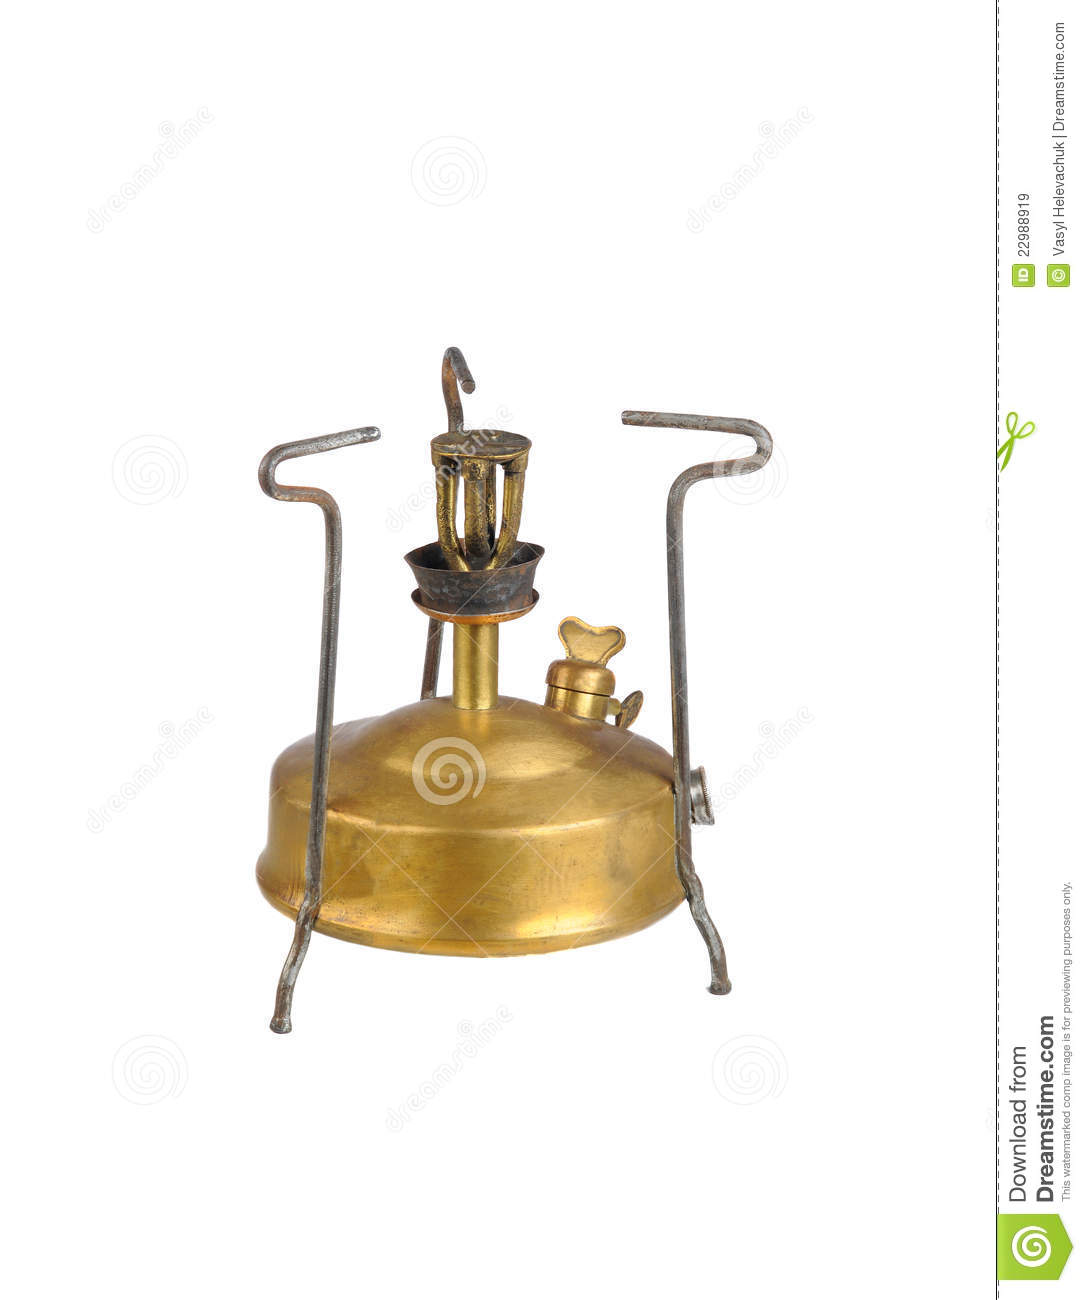 Old Camping Stove Royalty Free Stock Images - Image: 22988919